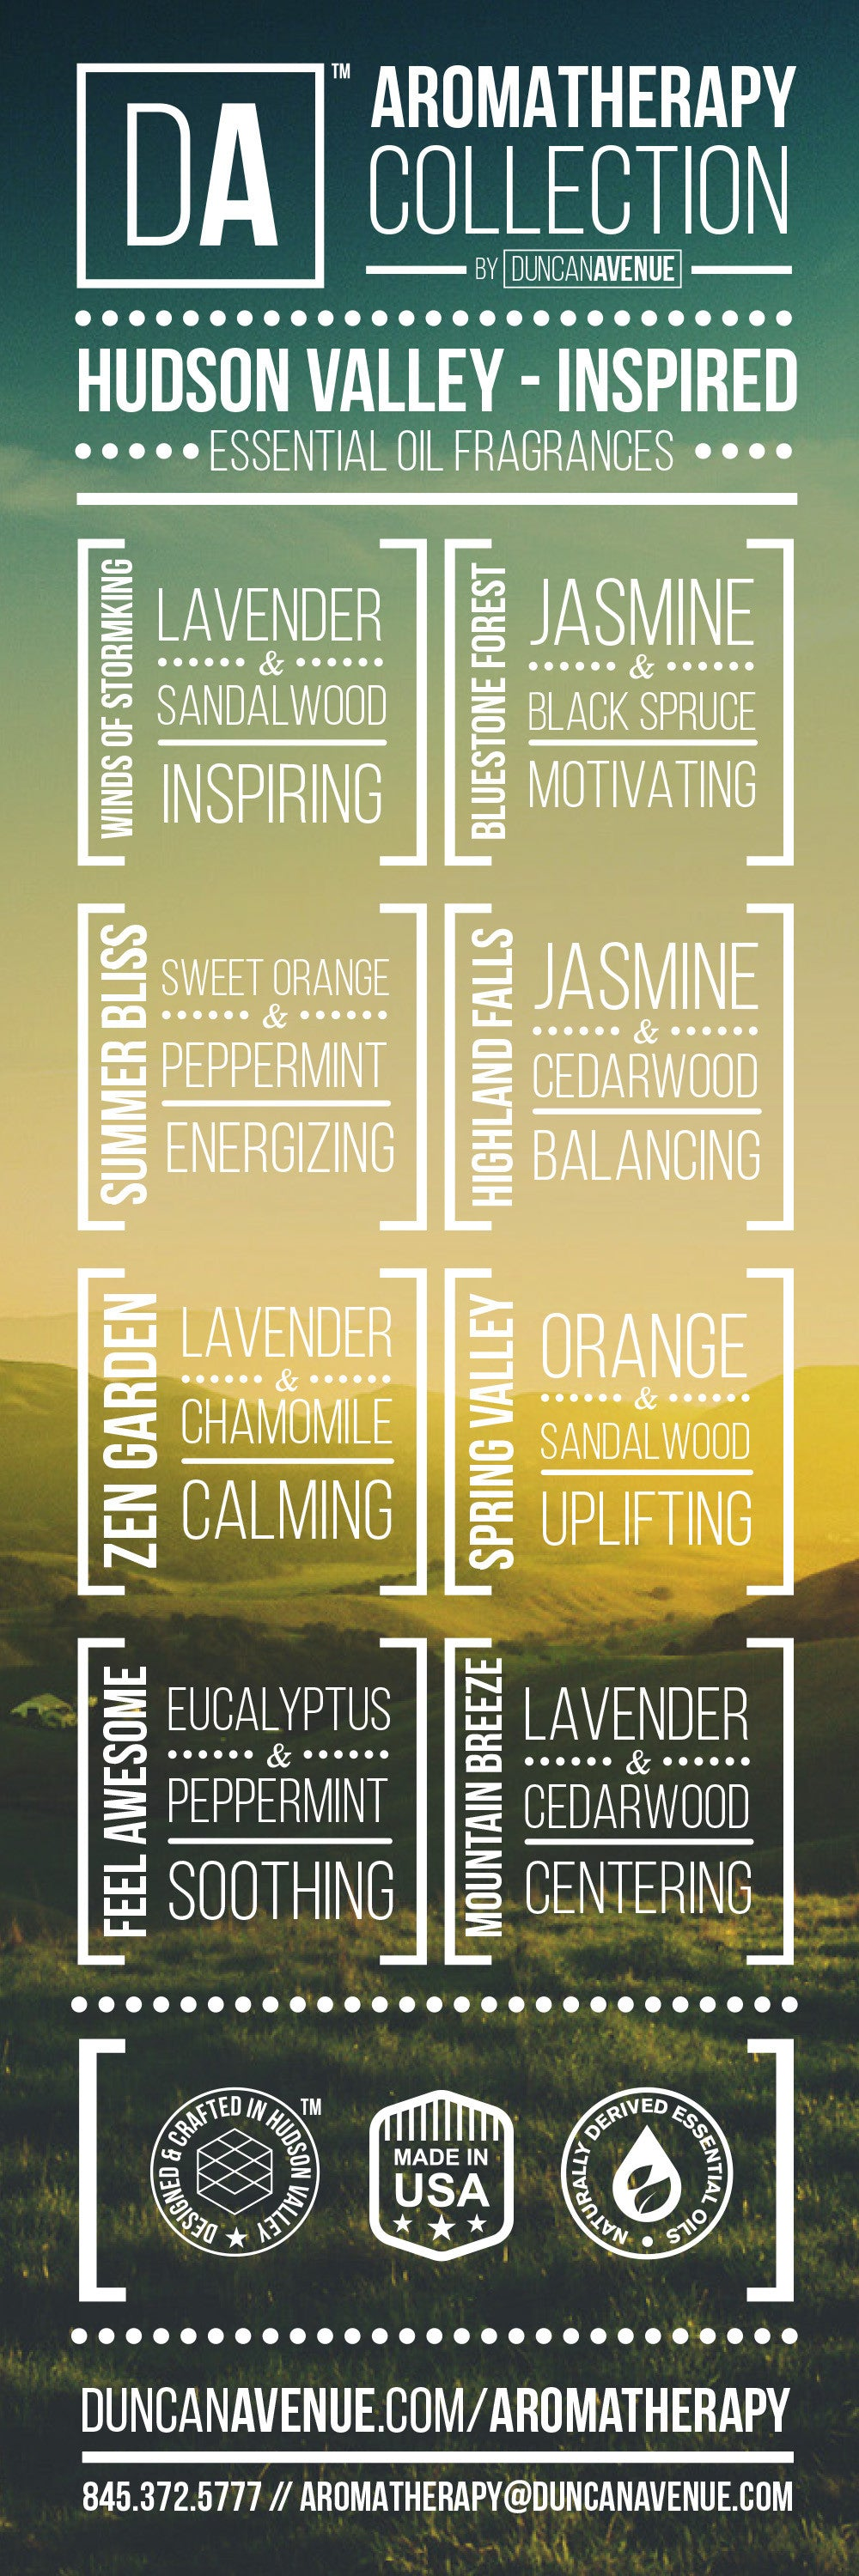 DA Aromatherapy Signature Essential Oil Blends – Infographic